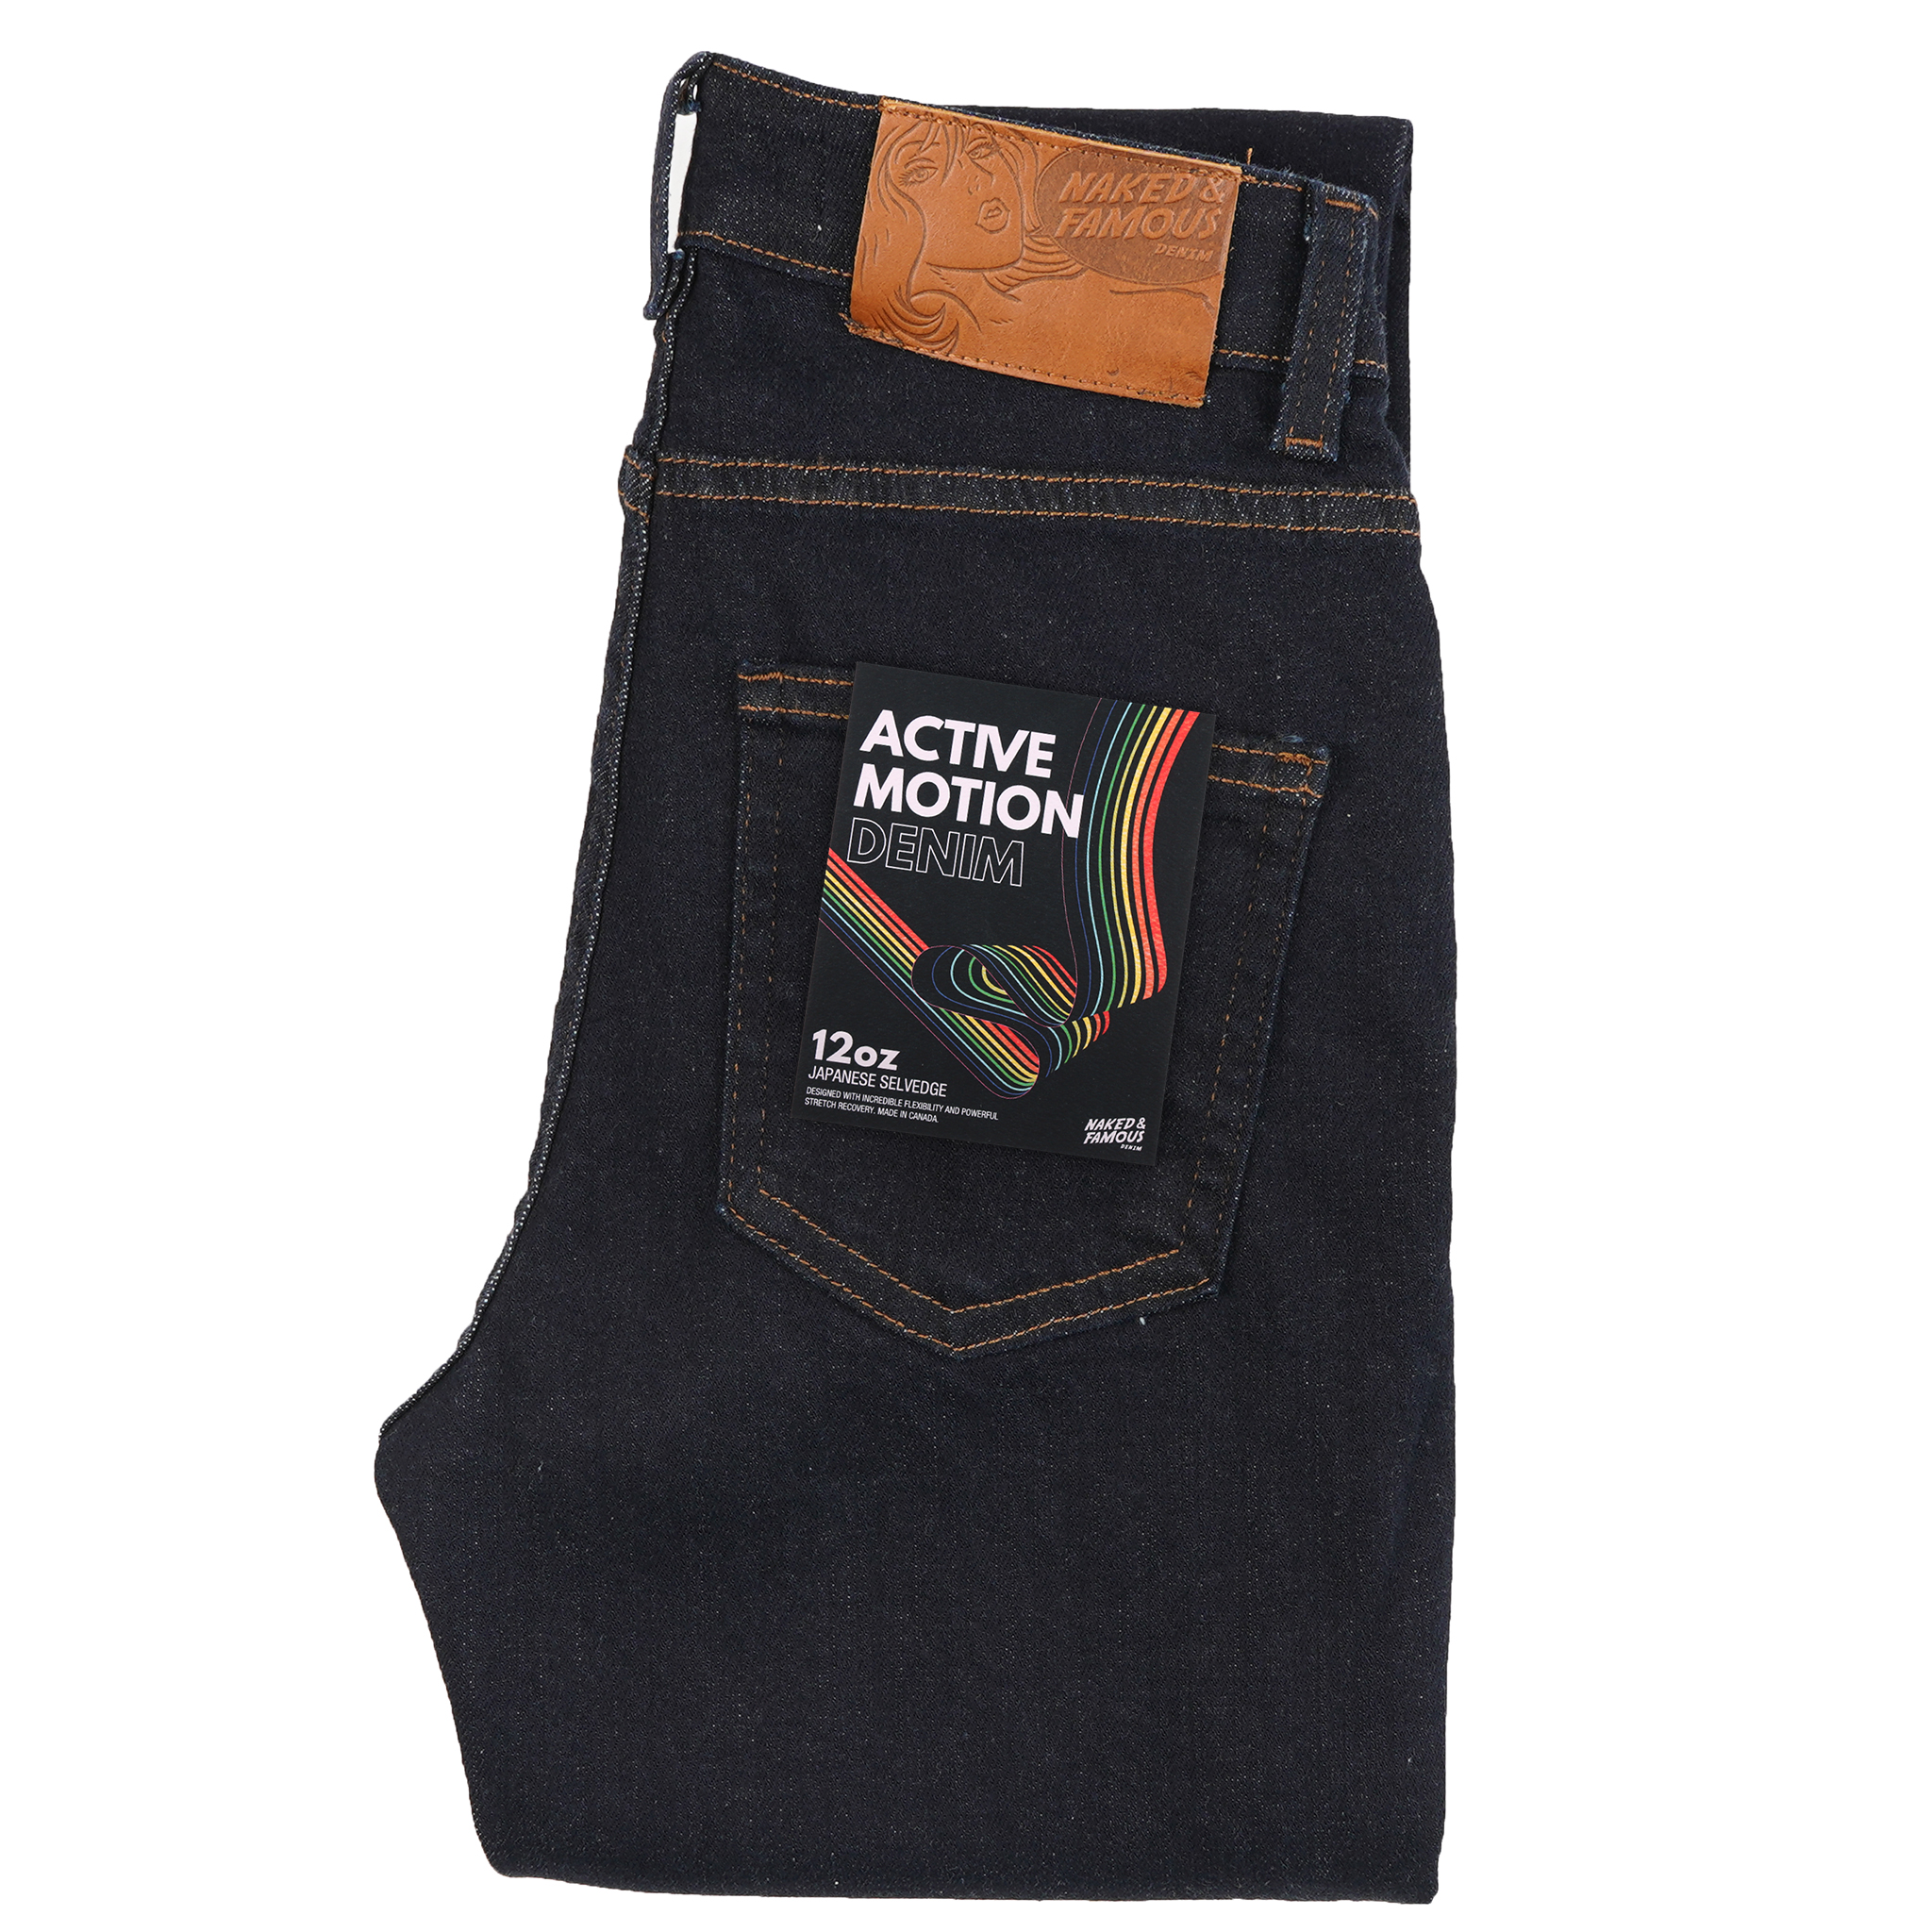 Active Motion Denim - High Skinny / Max